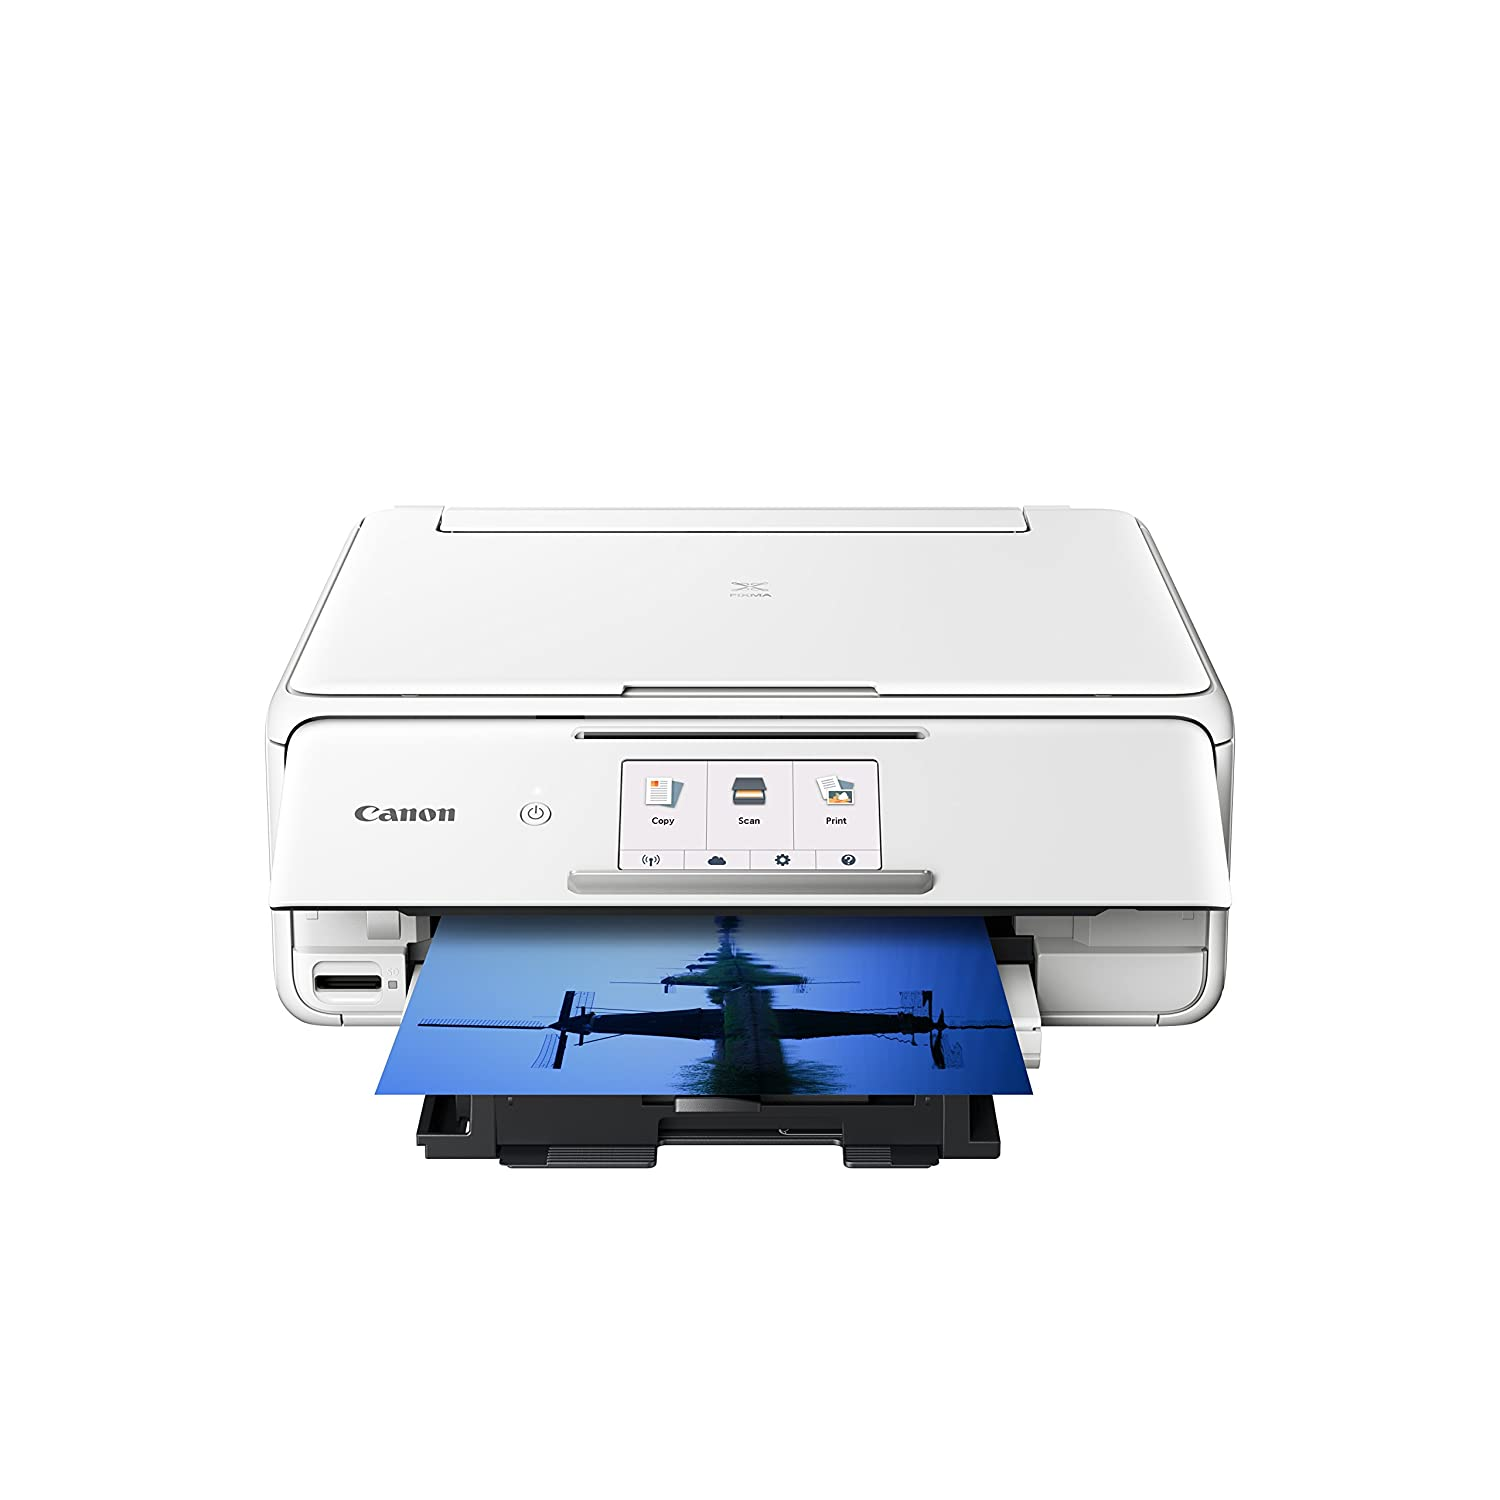 Canon PIXMA TS8120 Wireless Color Photo Printer with Scanner & Copier - White, and CLI-280XXL Black Ink bundle